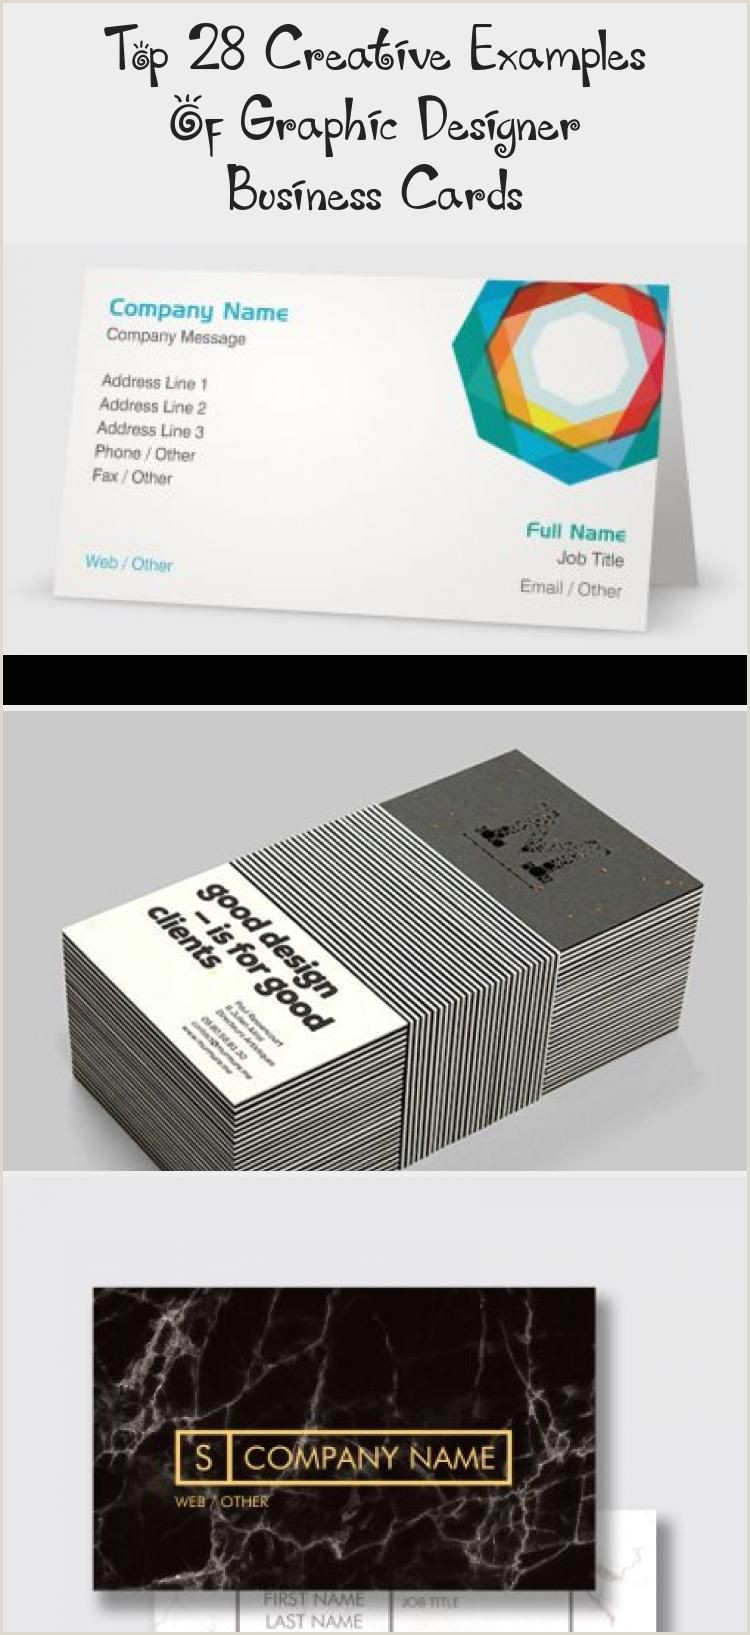 Good Company Messages For Business Cards Conversational Graphic Designer Business Cards